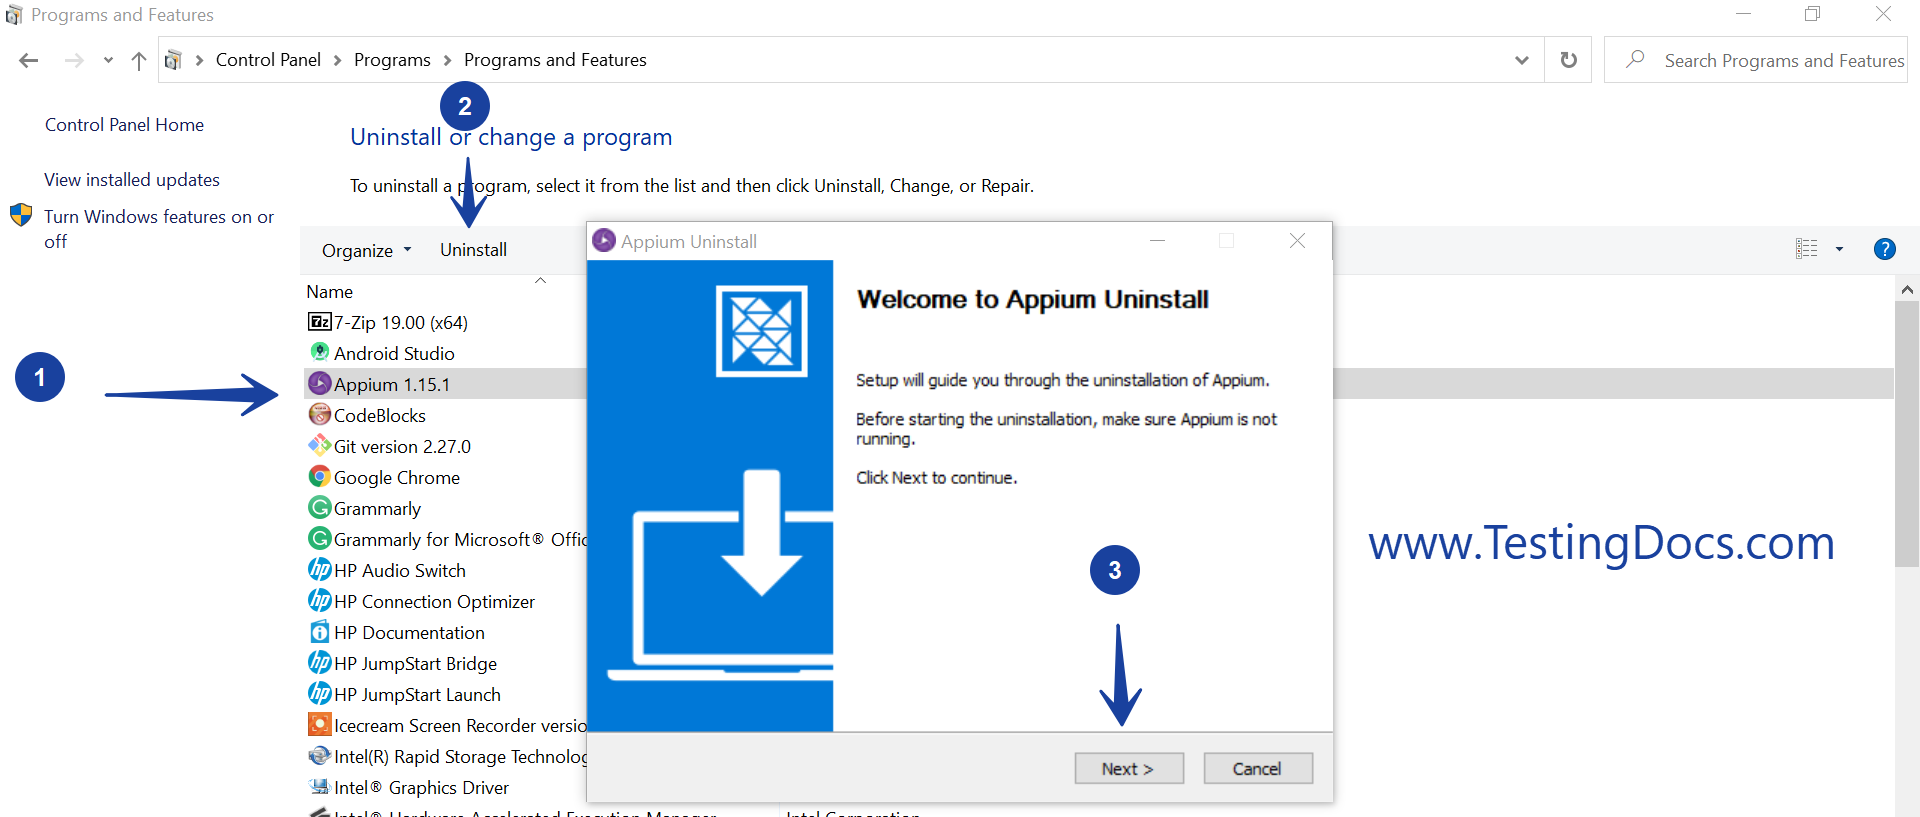 Uninstall Appium Windows